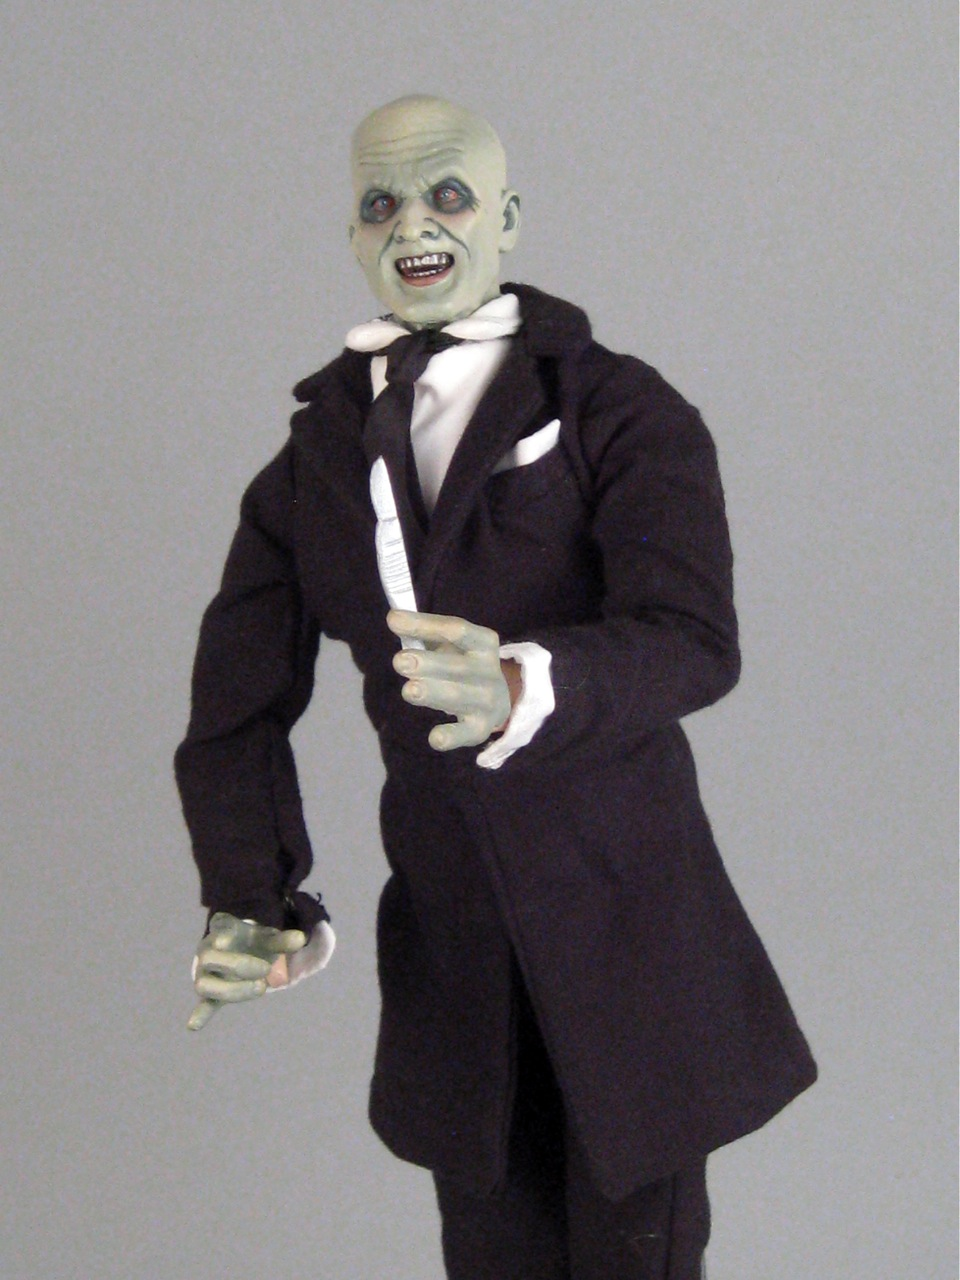 Sideshow The Gentlemen figure